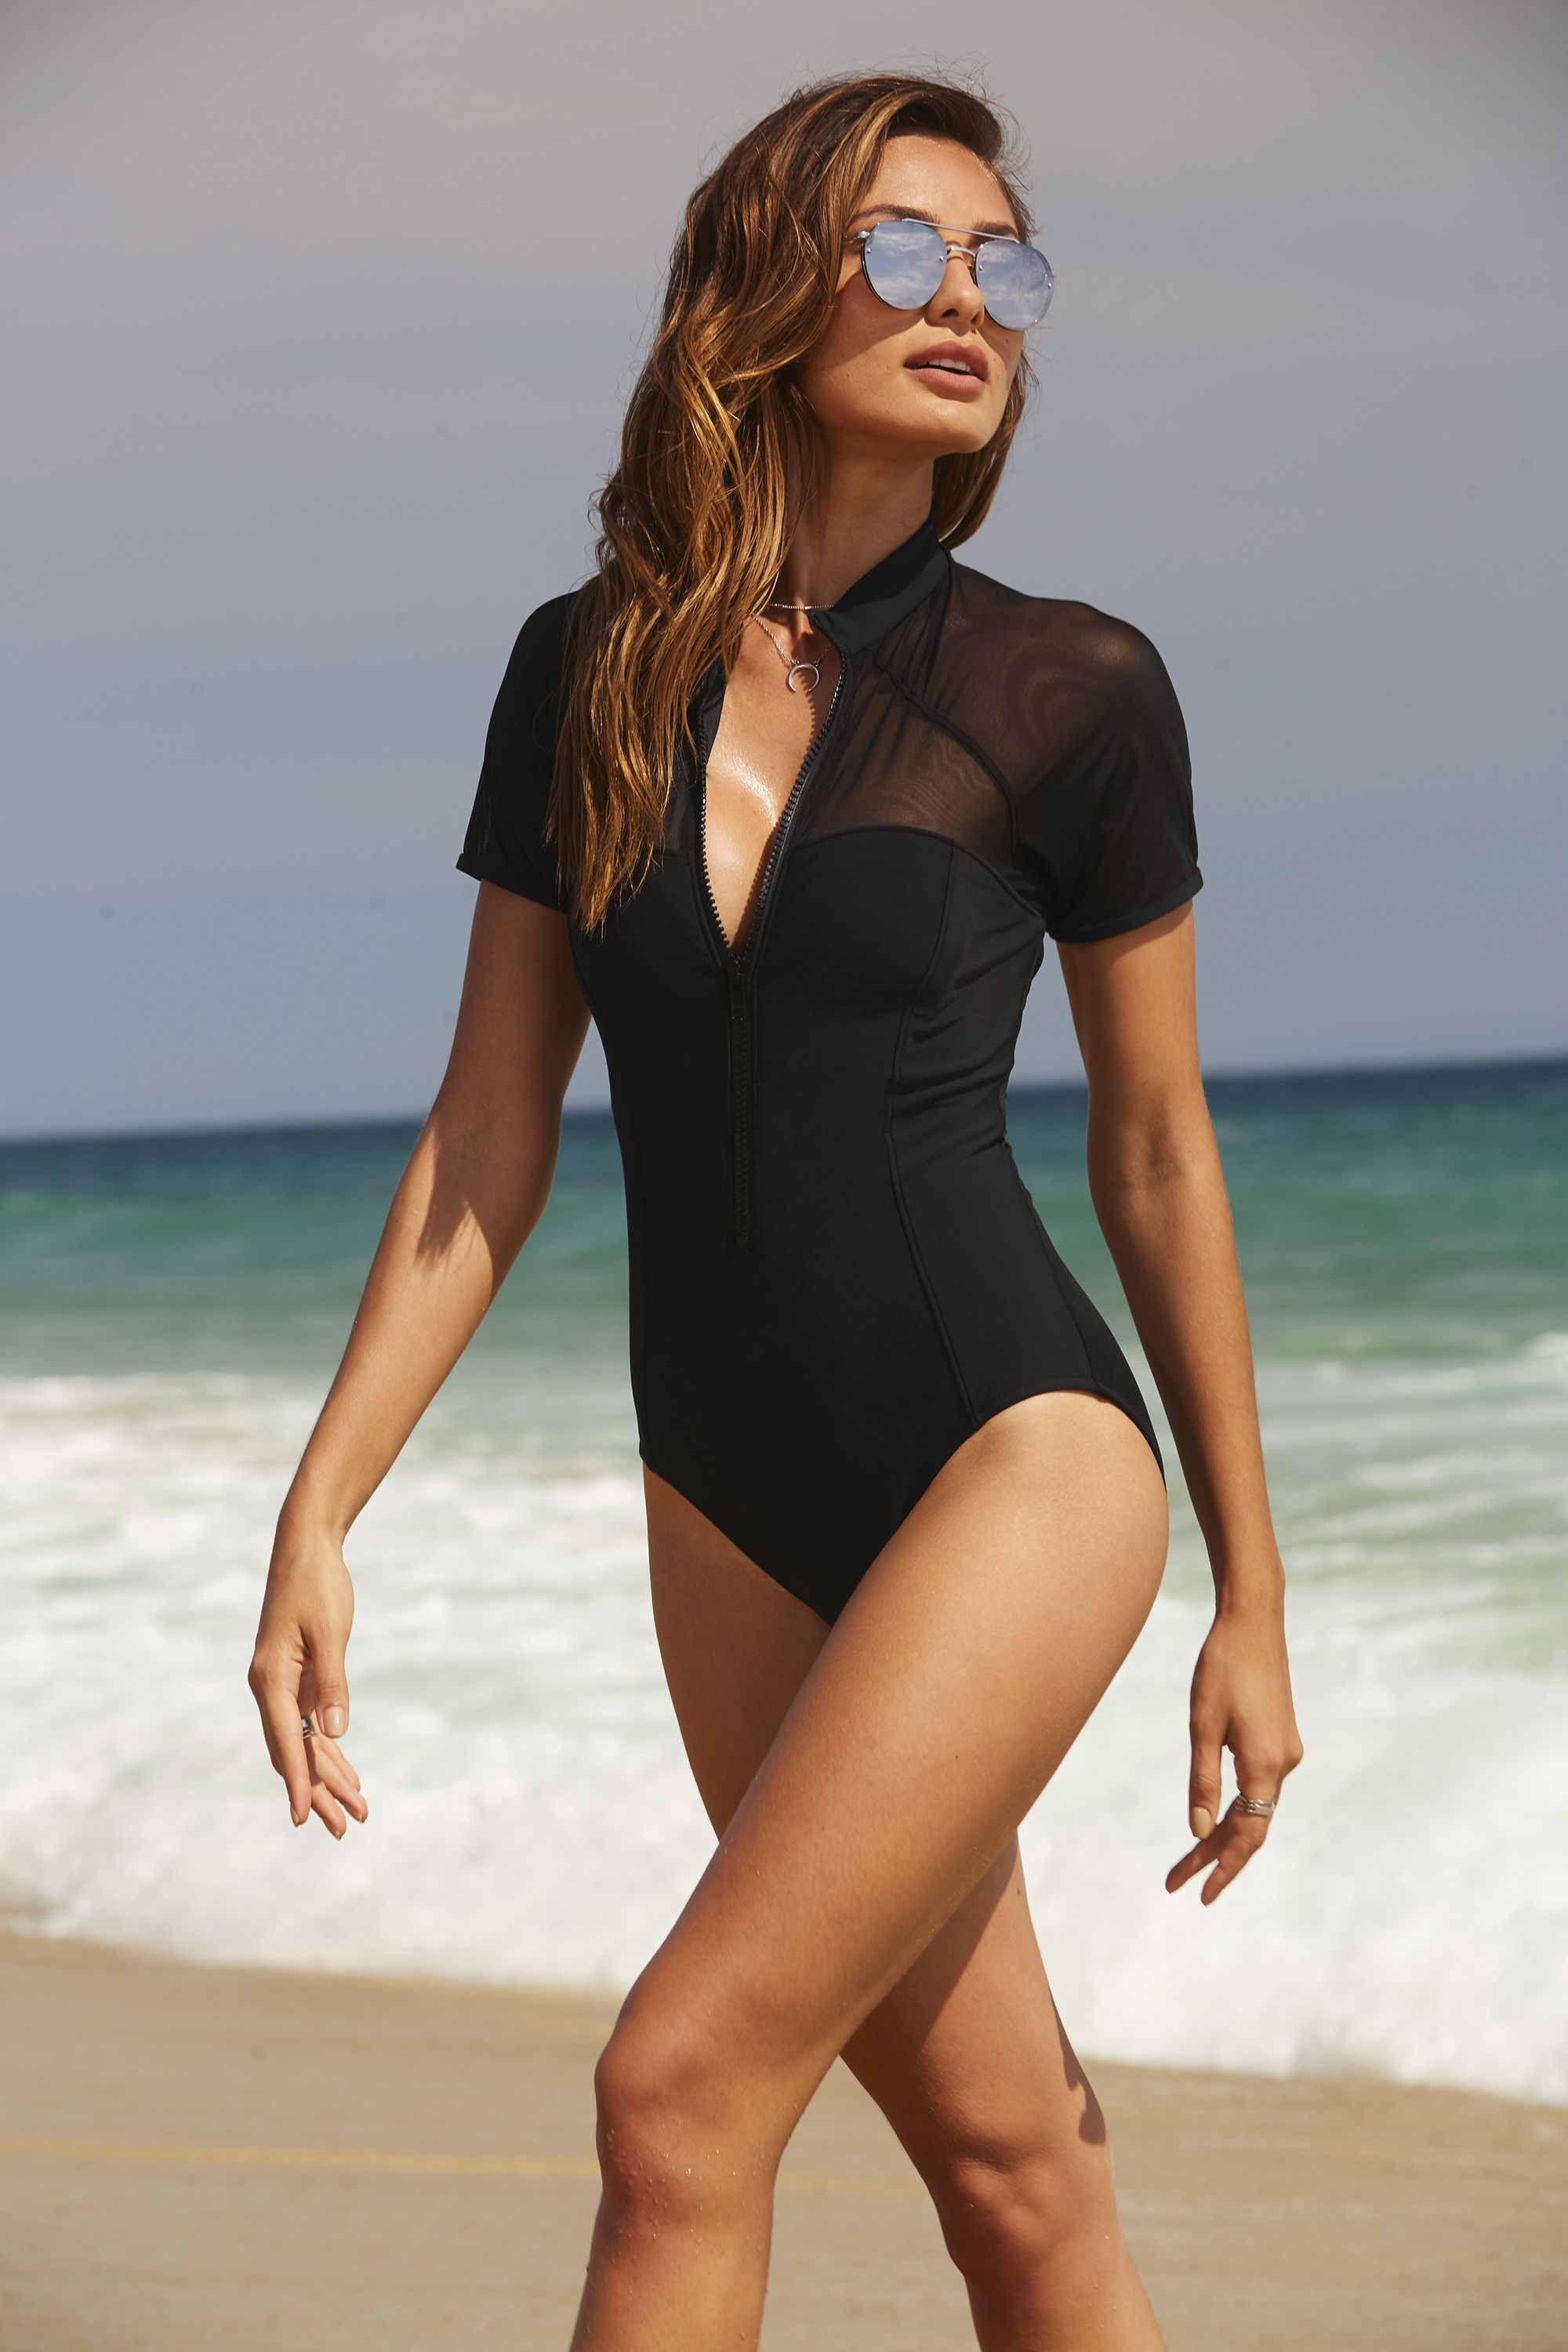 d667aa7955e0a Women s Short Sleeve Mesh One Piece Swimsuit by Boston Proper. Our latest  collection of swim has just arrived